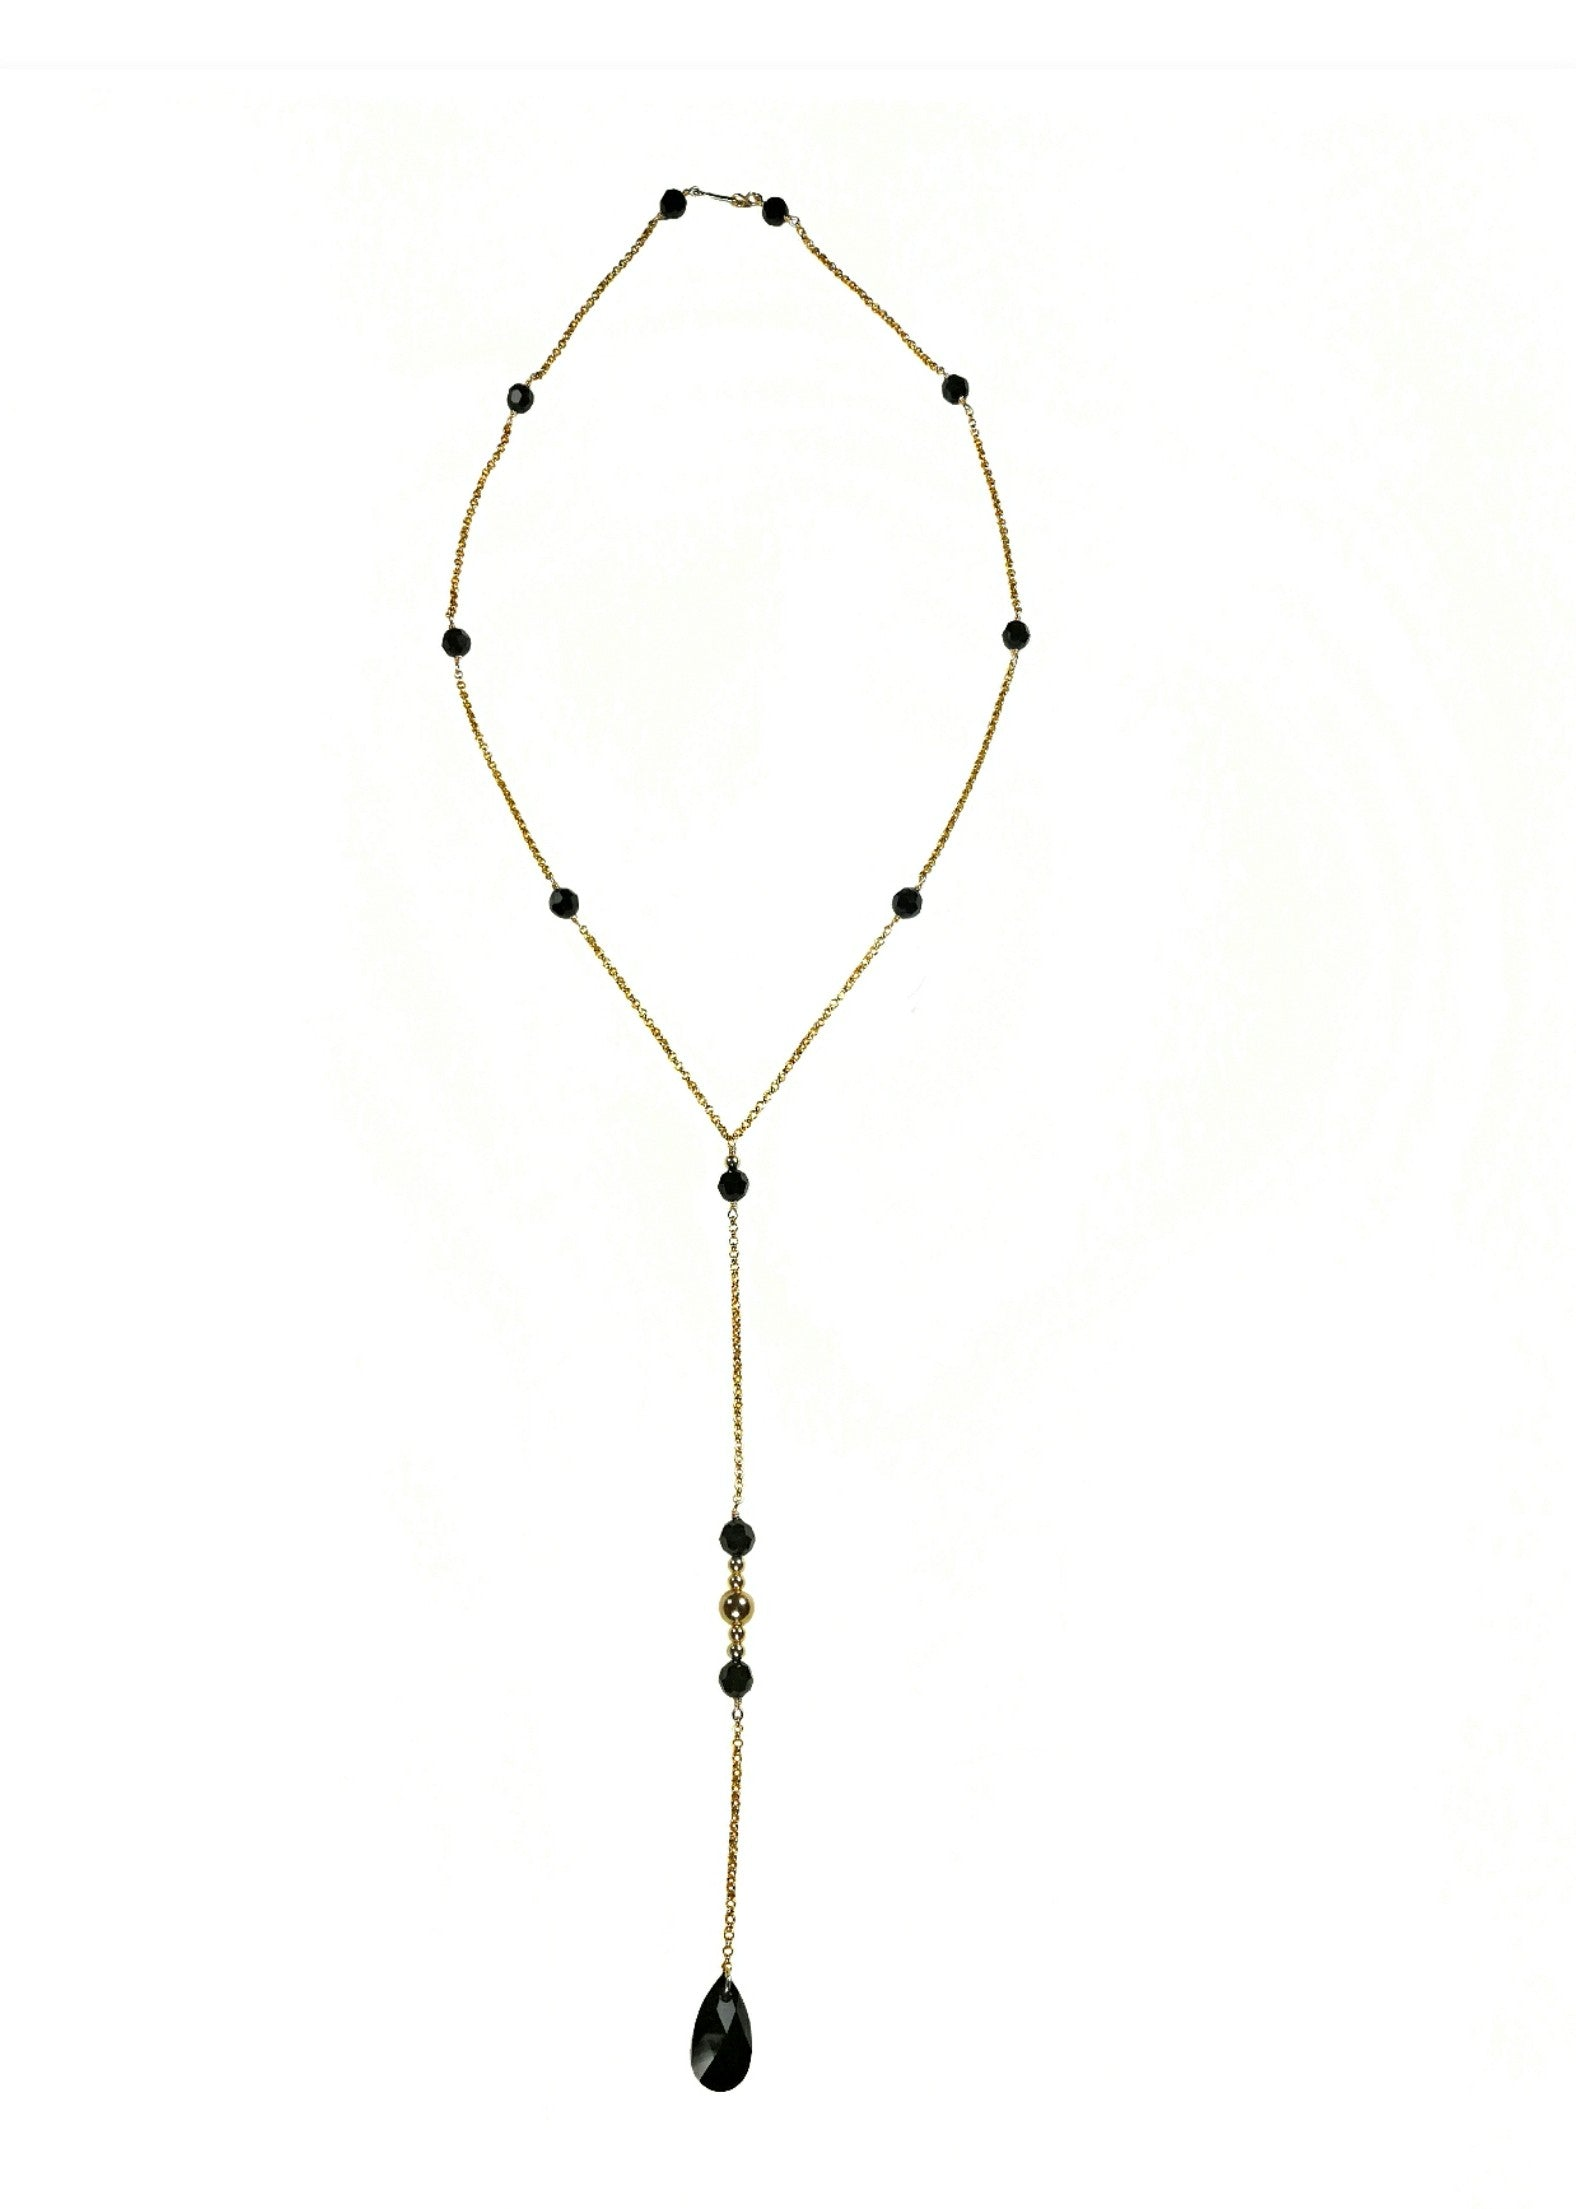 VALENTINA 14K Gold Filled Y long Necklace -maria-moyseos